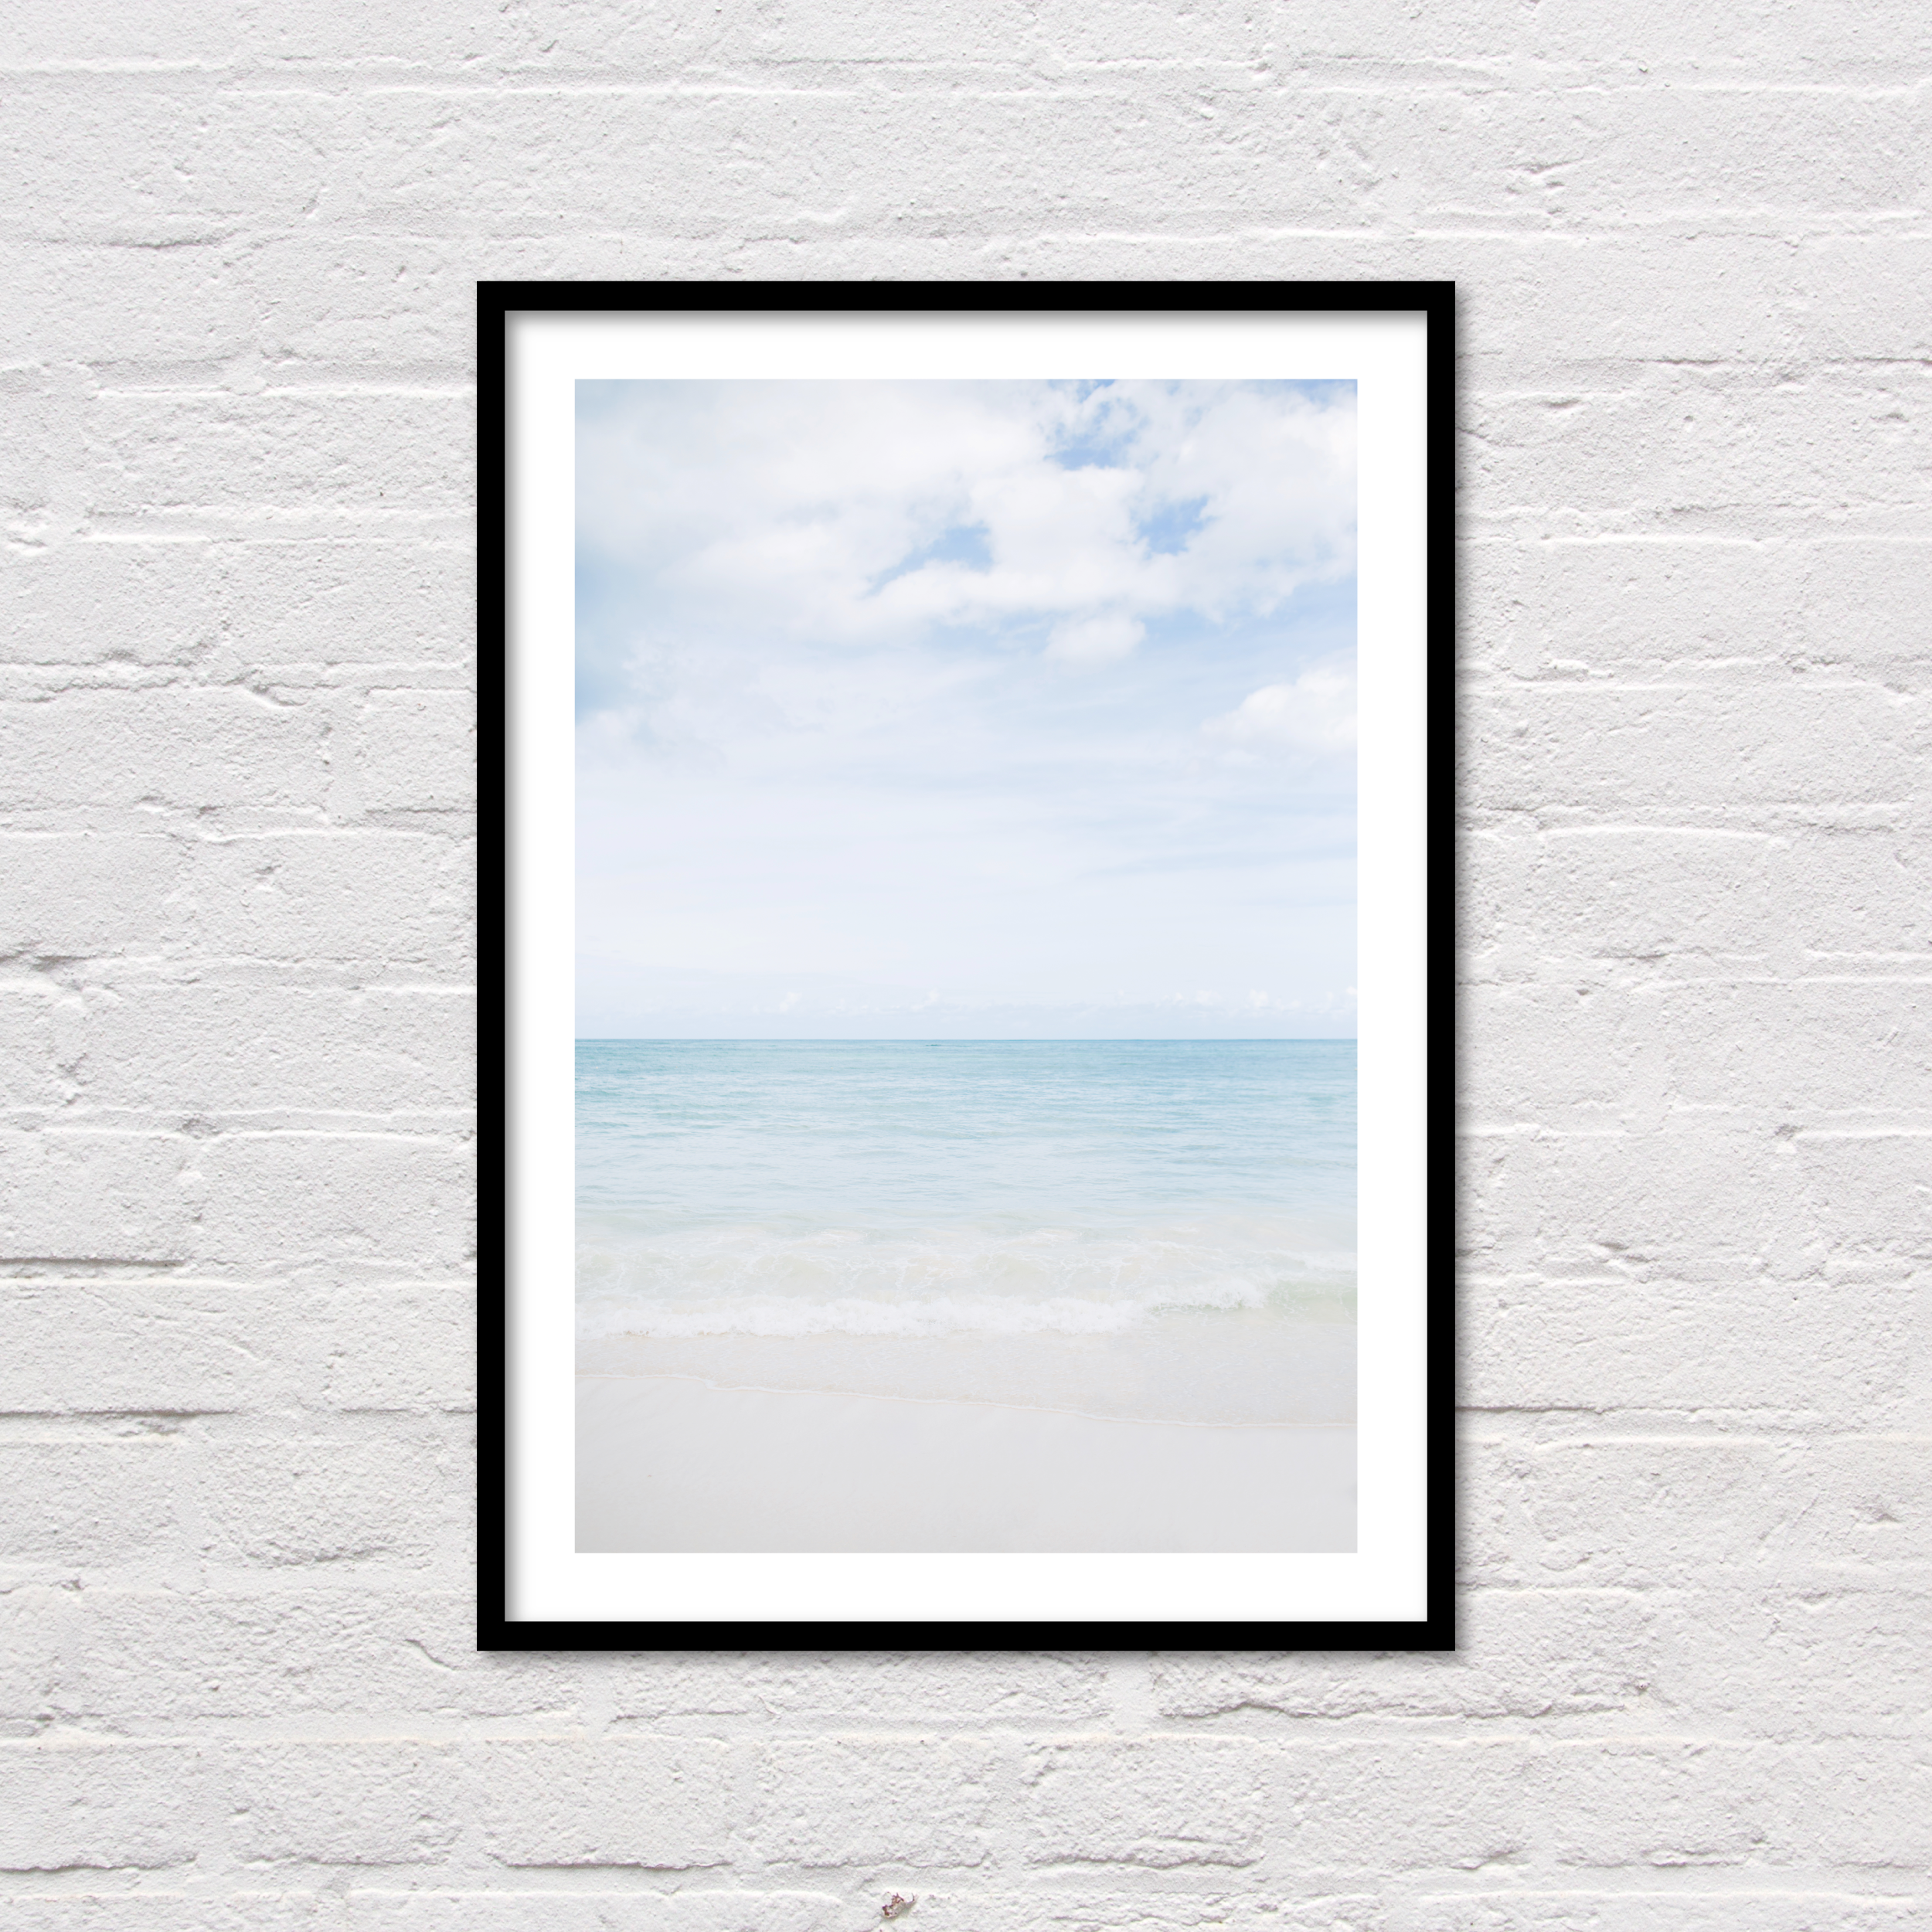 Caribbean Sea Print, Printable Wall Art, Modern Coastal Decor, Blue Ocean Photography, Dominican Republic, Punta Cana, Digital Download